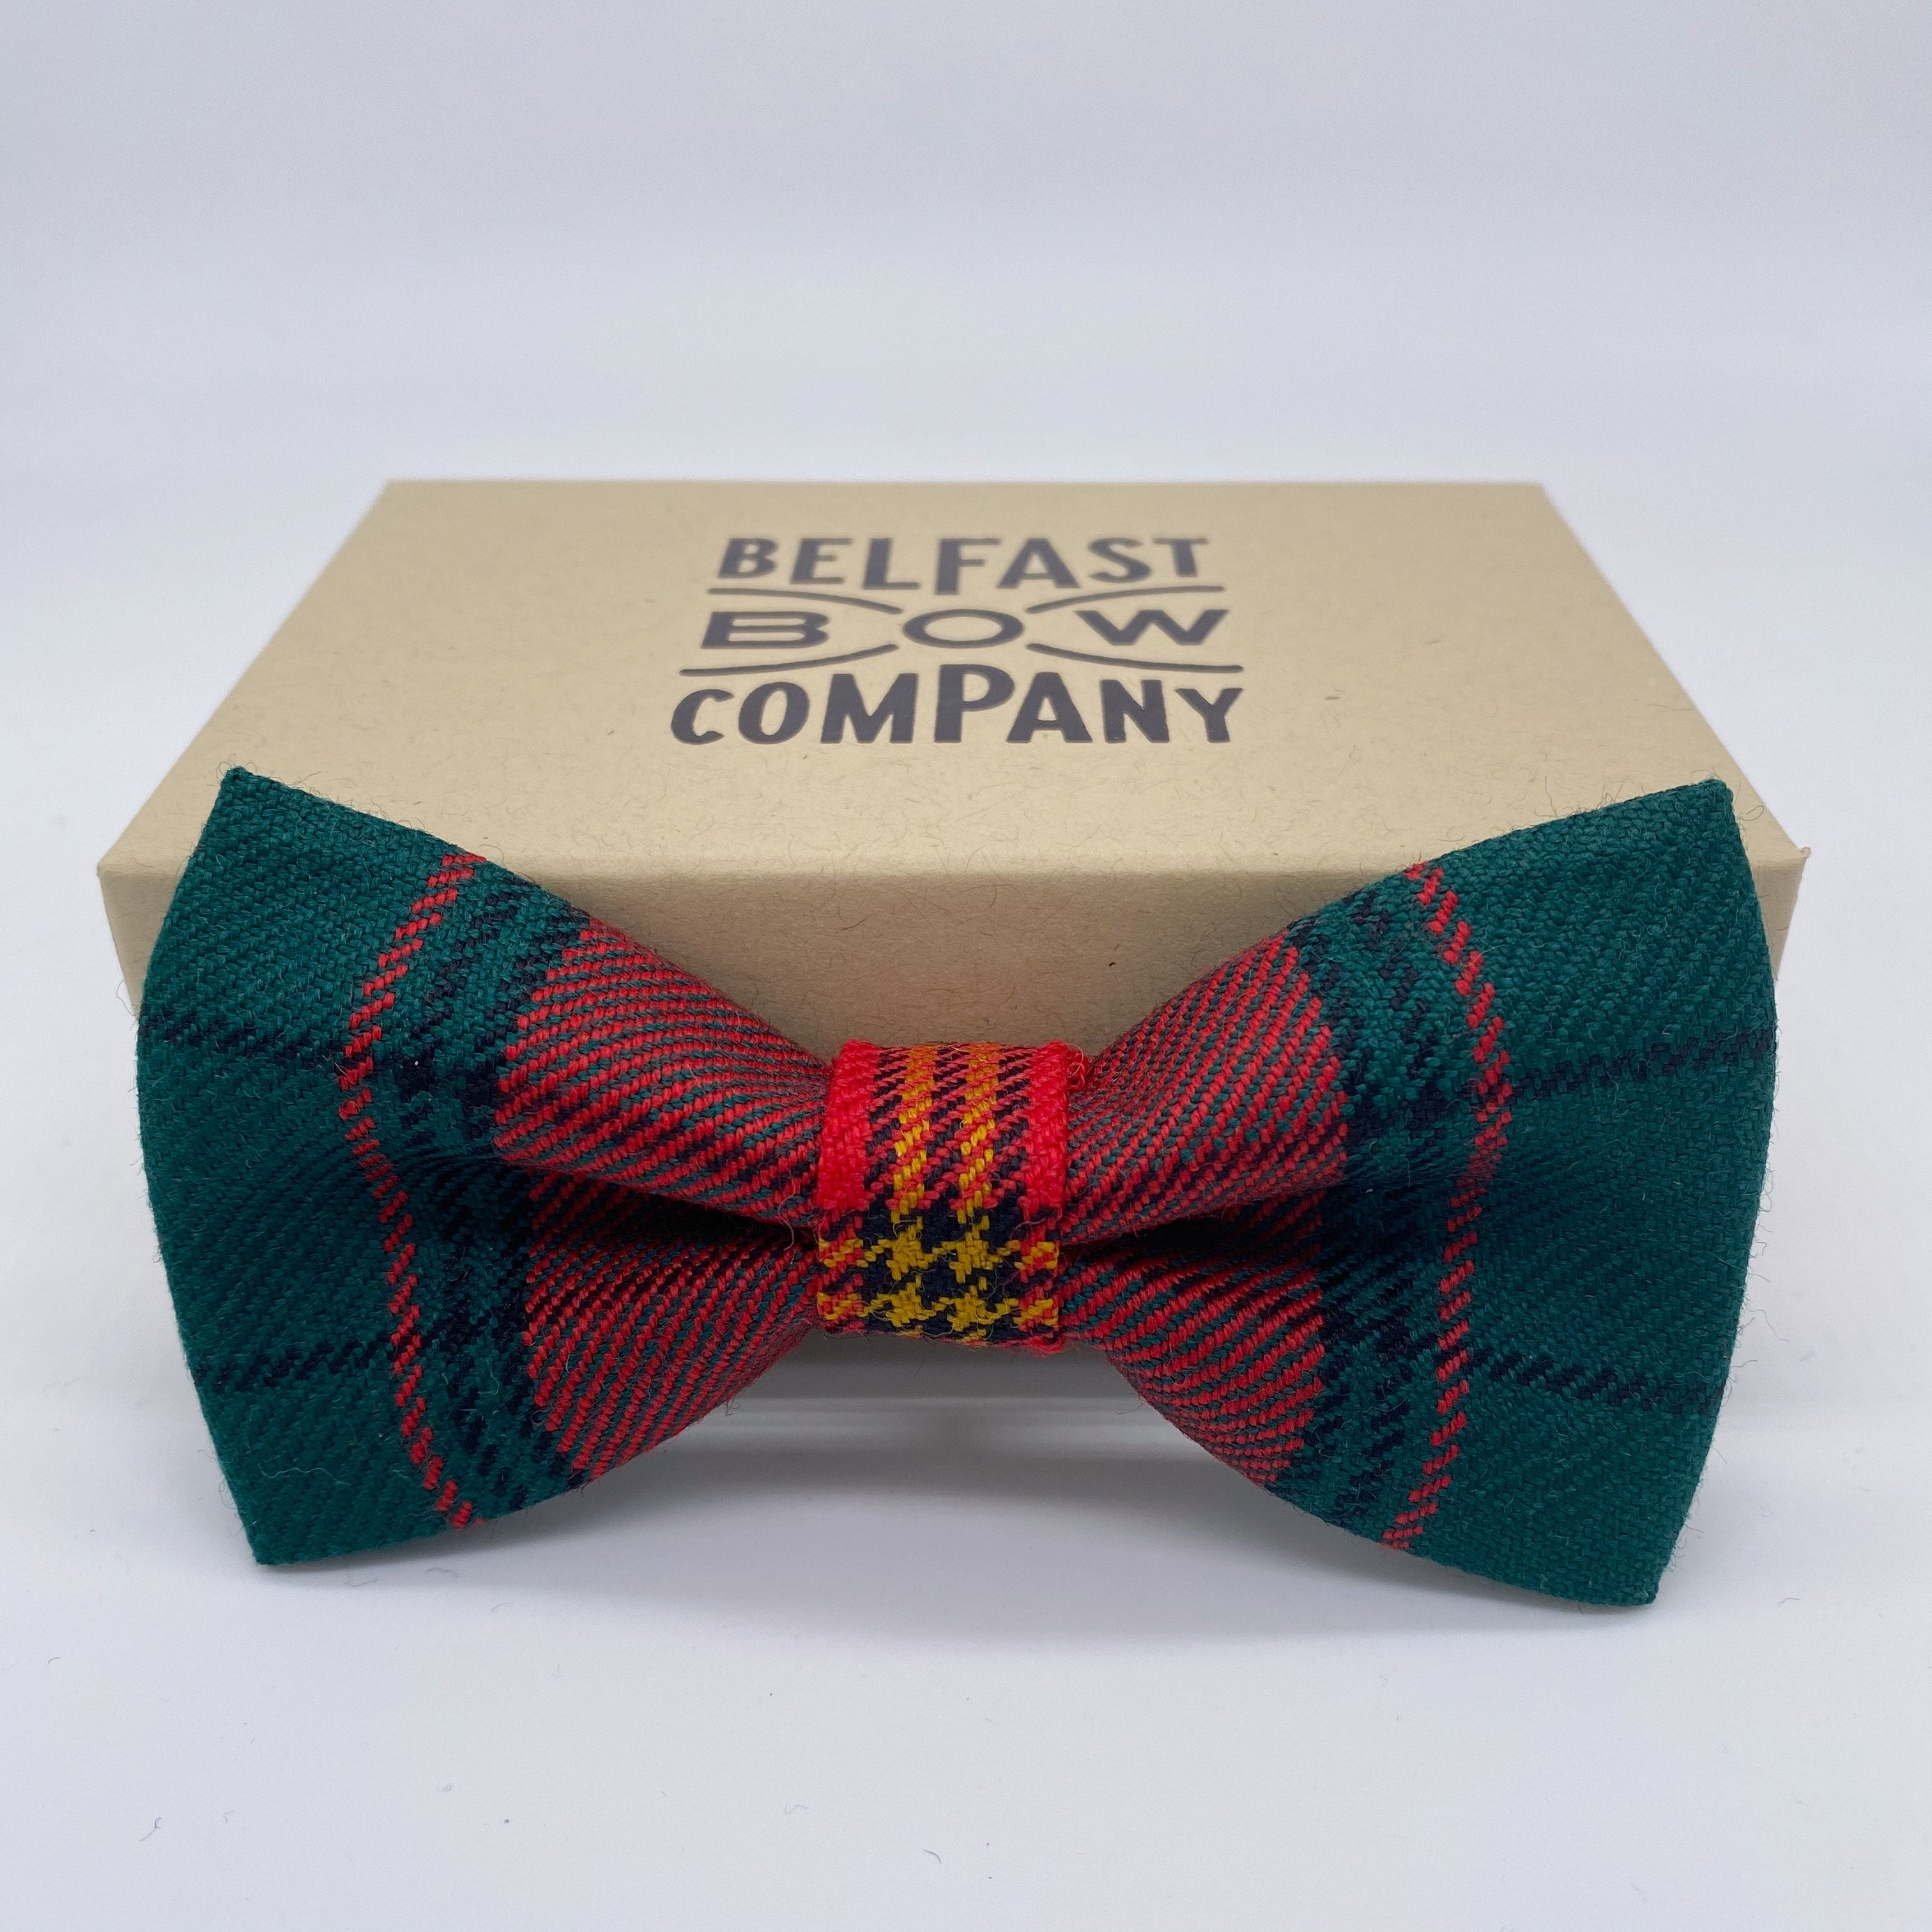 Ulster Tartan Bow Tie by the Belfast Bow Company